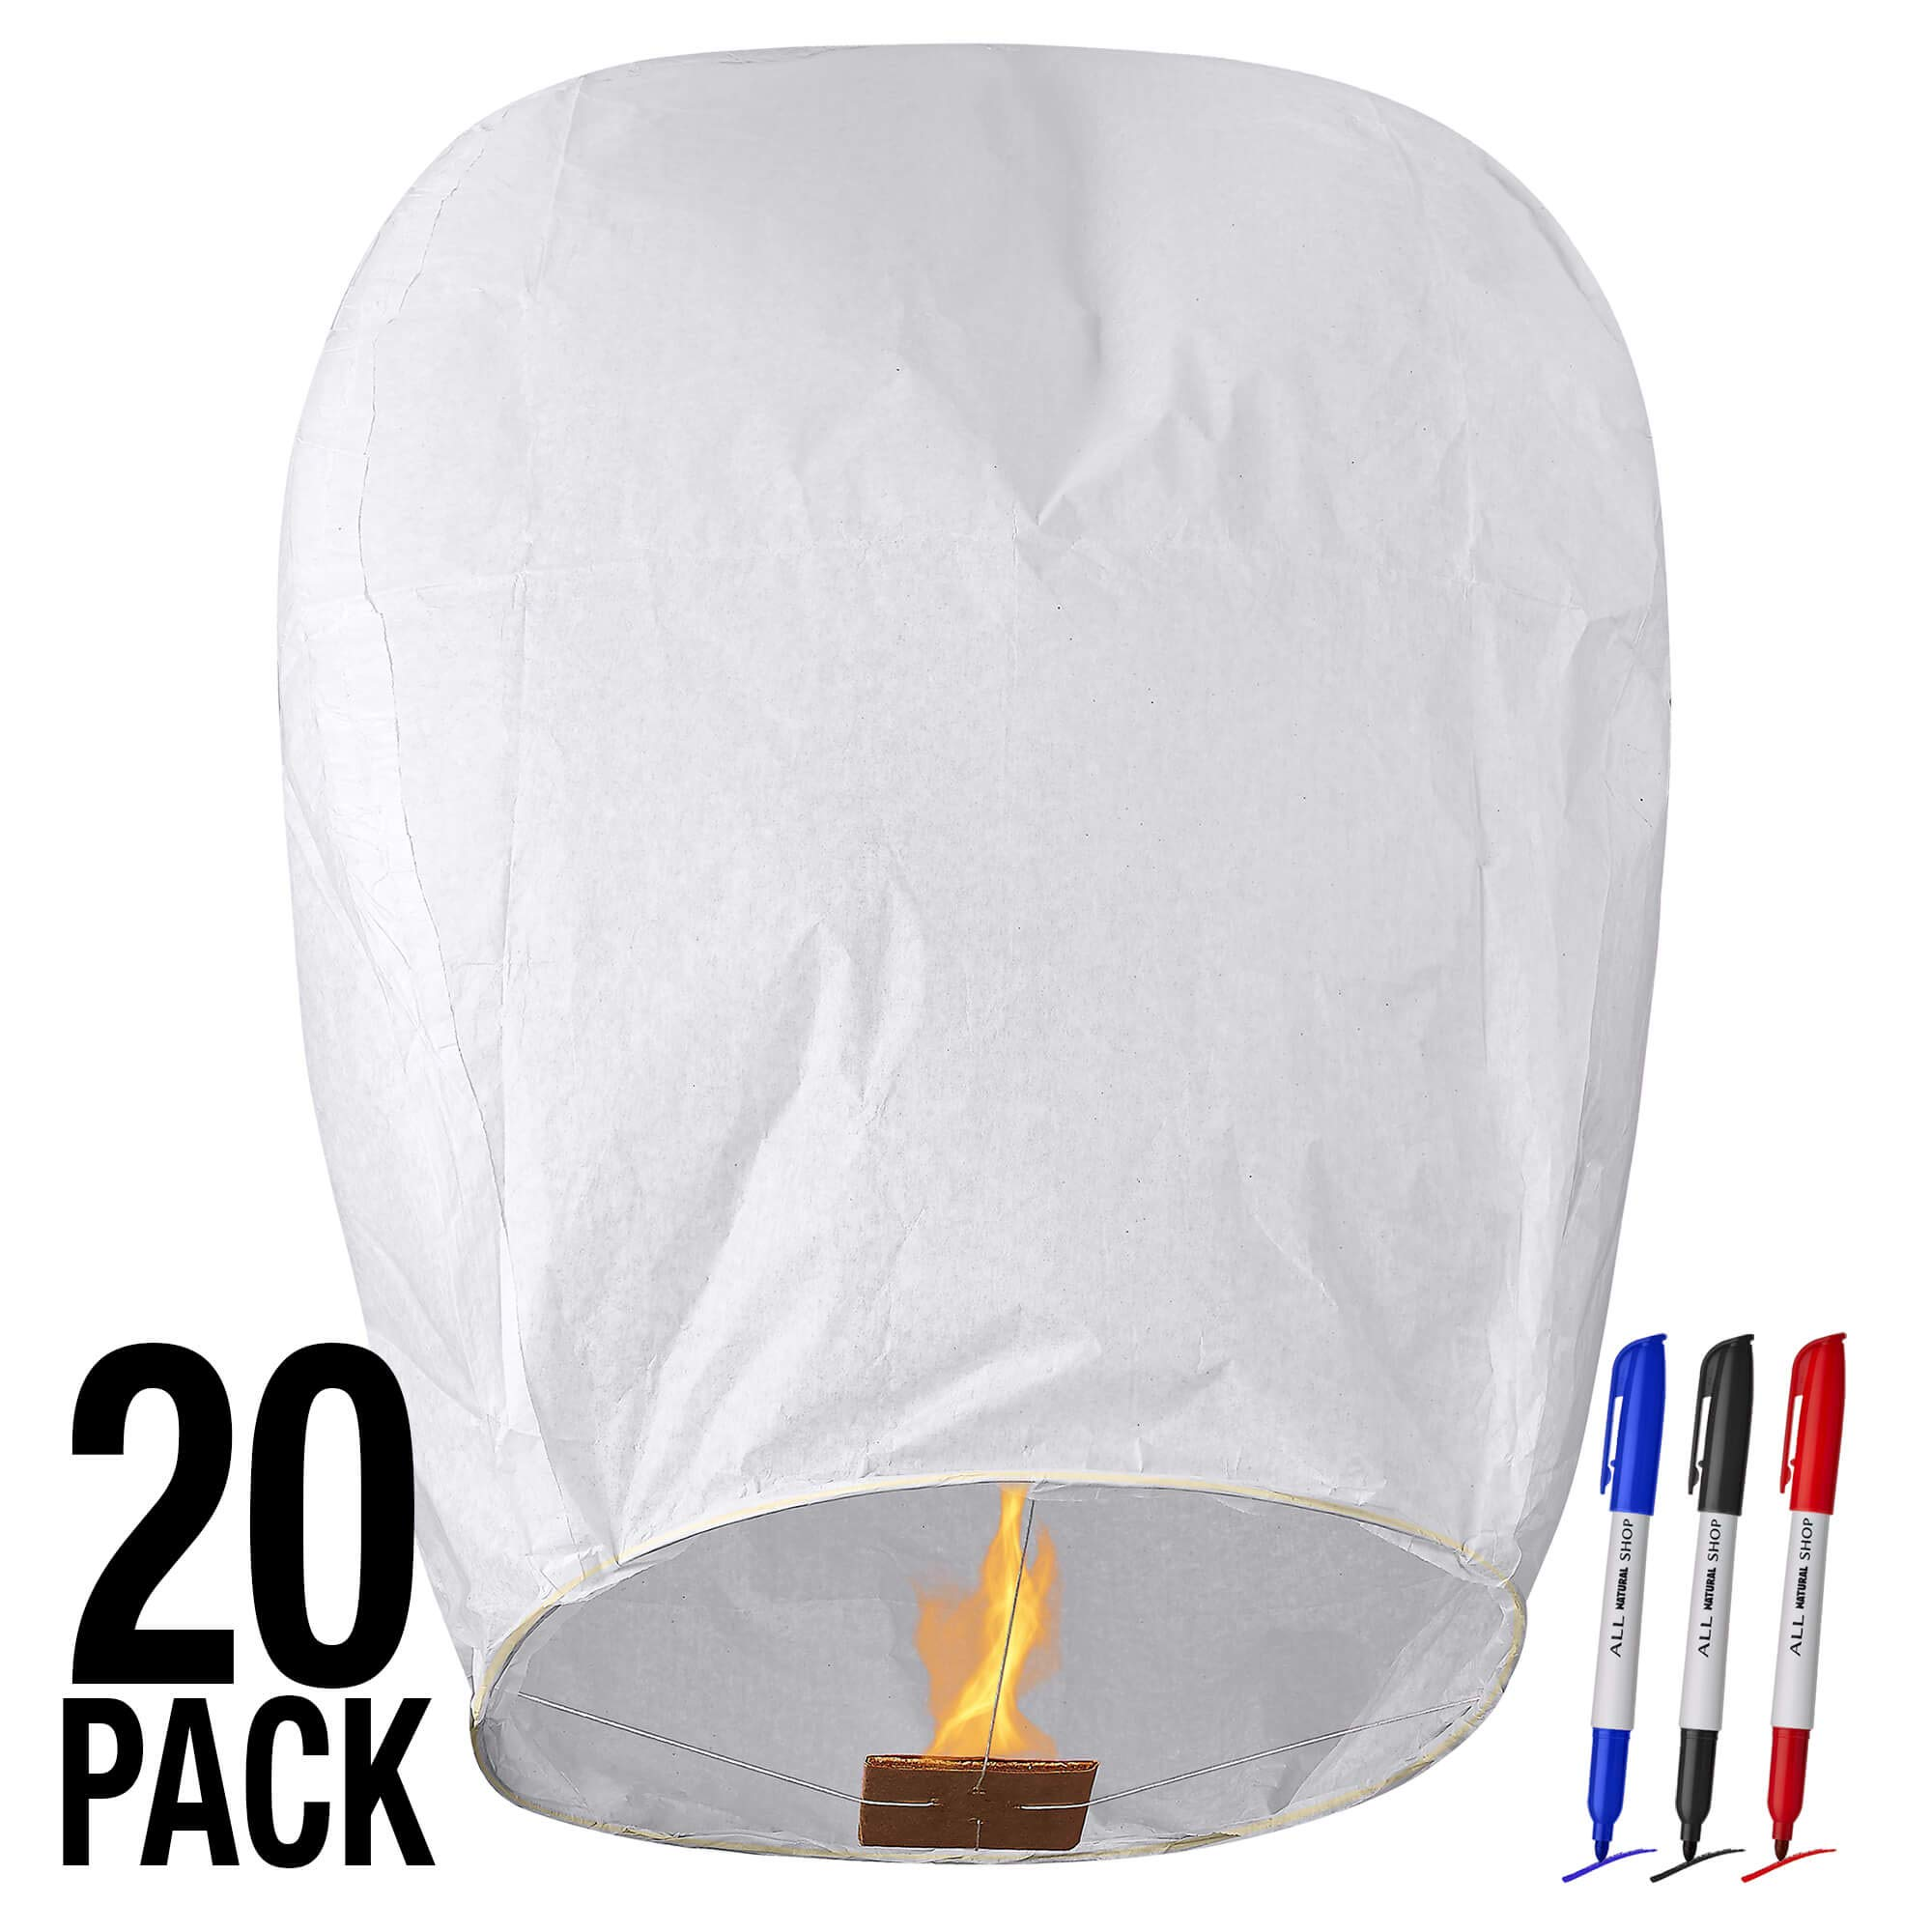 All Natural Shop 20 Pack White Chinese Sky Lanterns to Release in Sky - Biodegradable, Eco Friendly, Wire-Free Flying Paper Lanterns. Our Memorial Floating Wish Lanterns Can Be Used for Any Occasion! by All Natural Shop